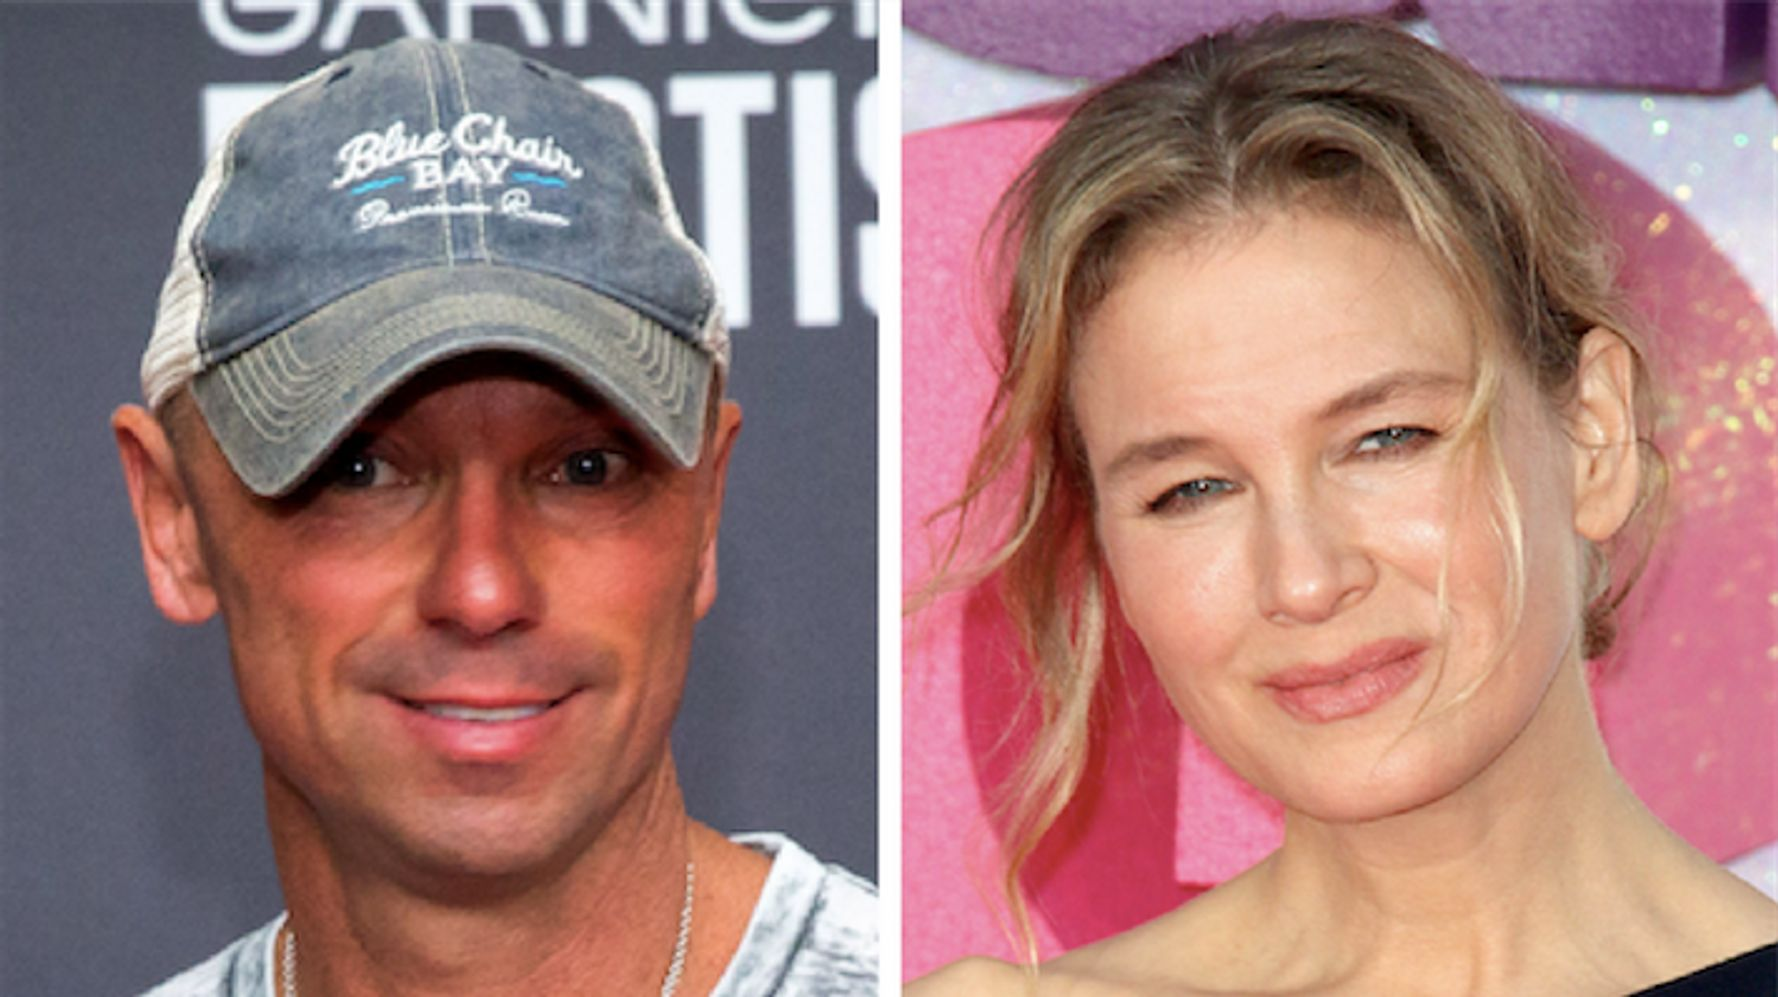 Is country singer kenny chesney gay